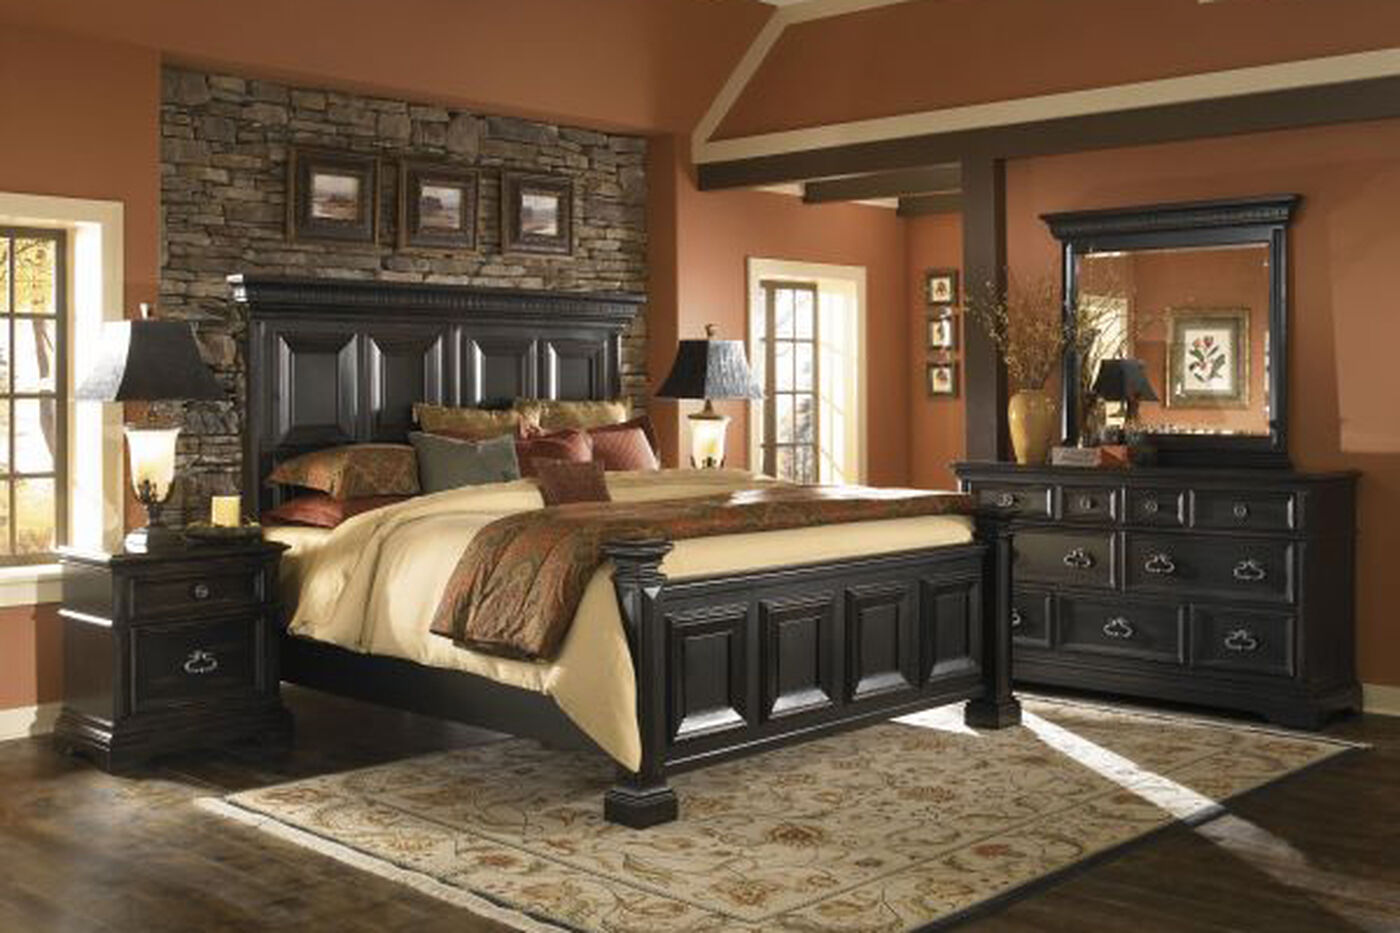 piece buyloxitane furniture bedroom in mathis sets styles shaker four brothers driftwood plus cool set com